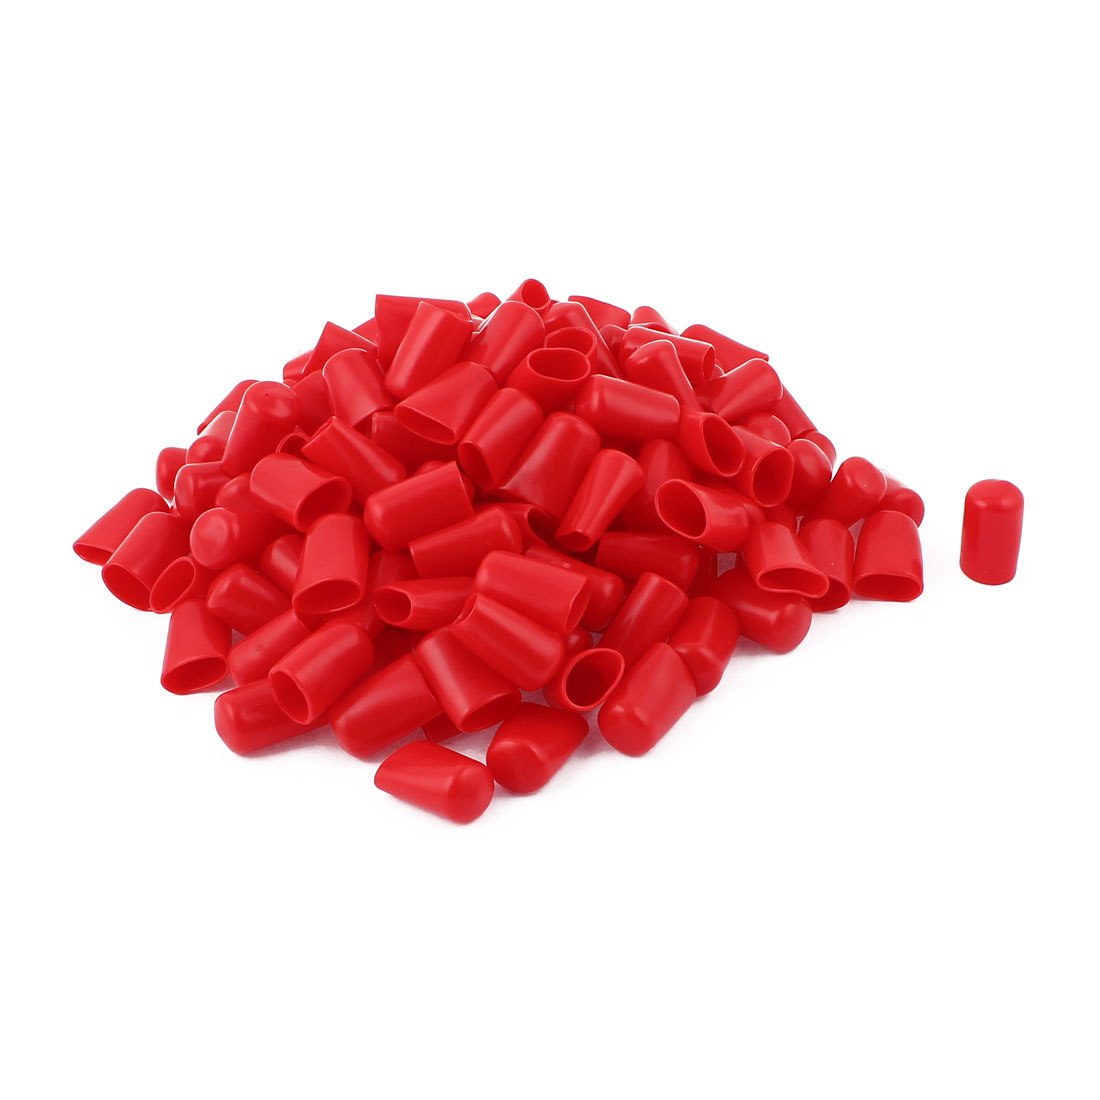 160 Pcs 16mm Flexible Red Vinyl Insulated End Caps Covers Protectors Sleeves